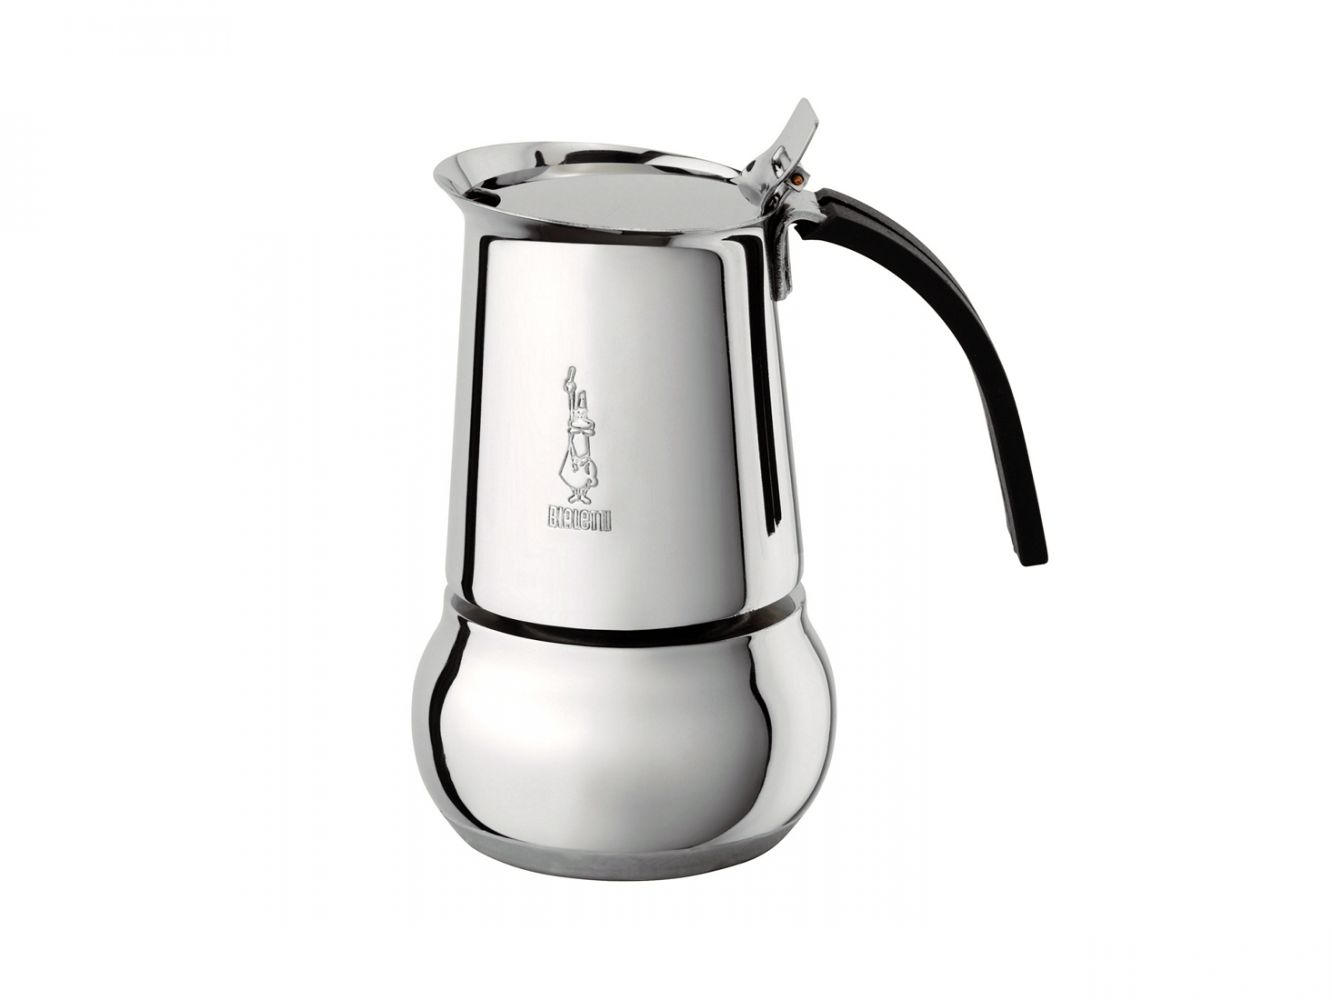 Moka konvice Bialetti Kitty